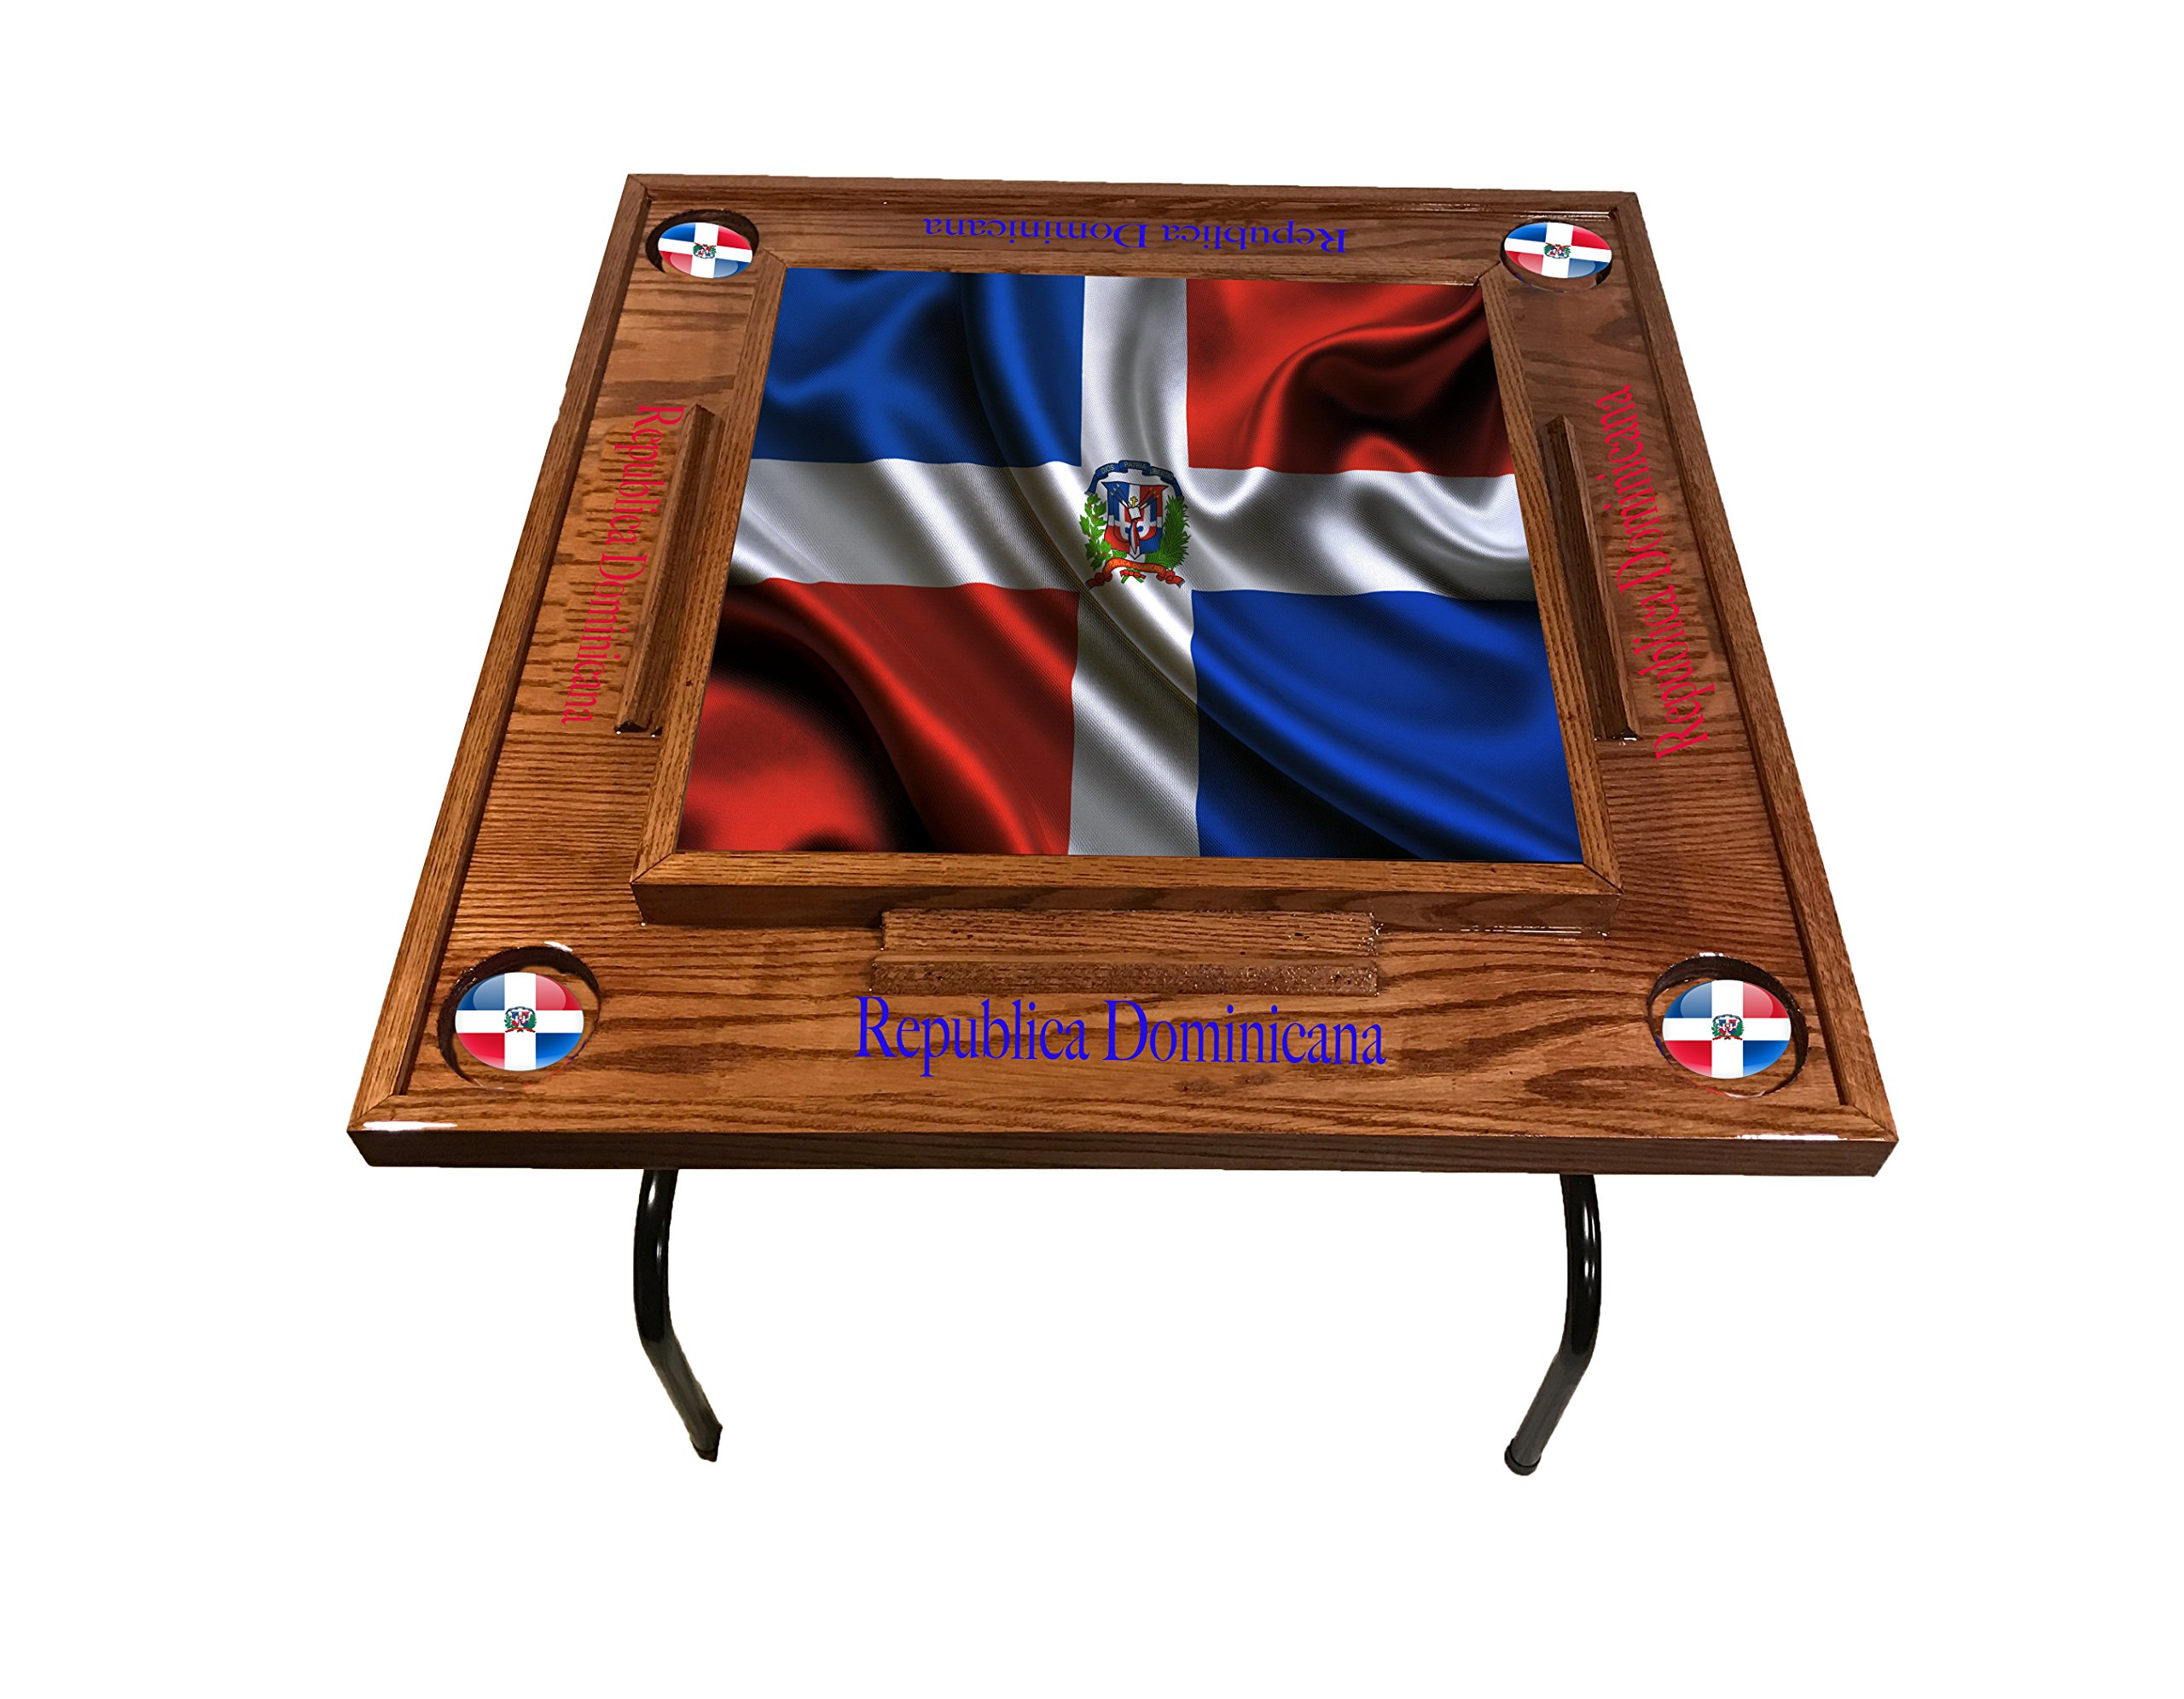 latinos r us Dominican Republic w full Falg Domino Table (Red Mahogany)